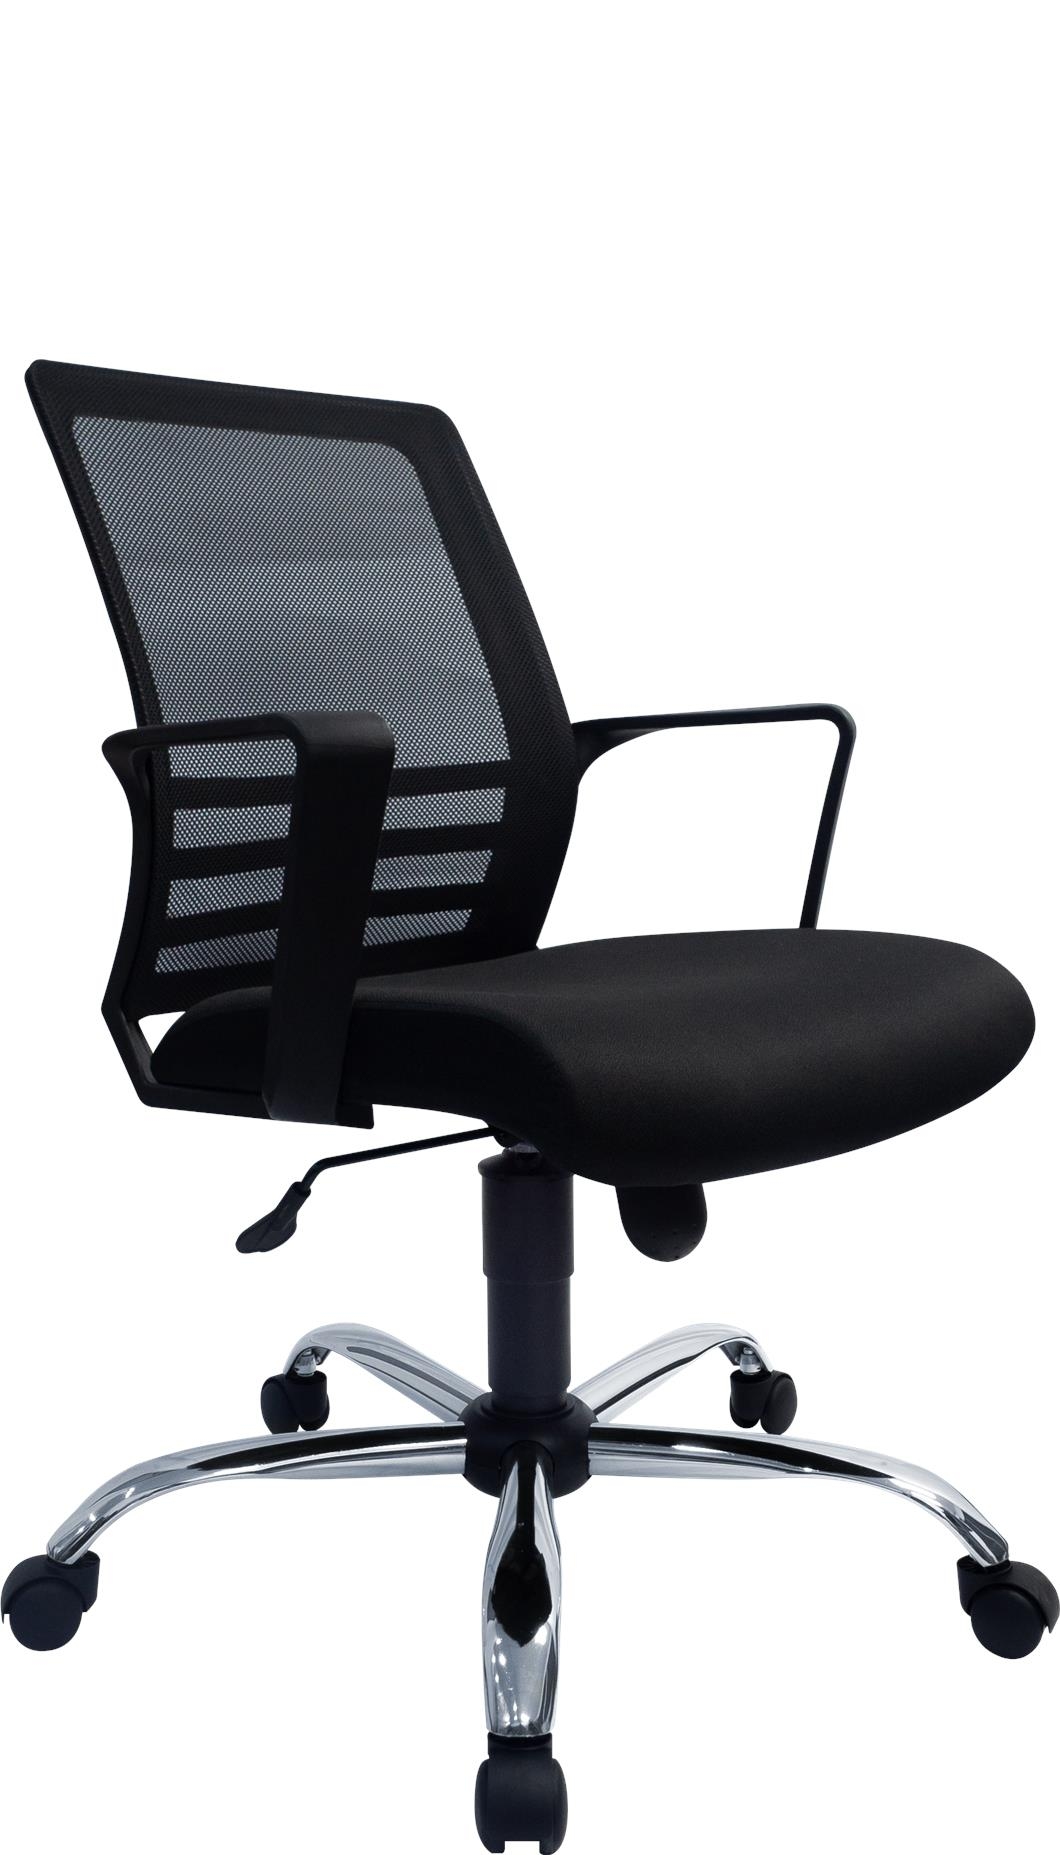 Low Back Office Chair Low Back Office Chair Nt 37